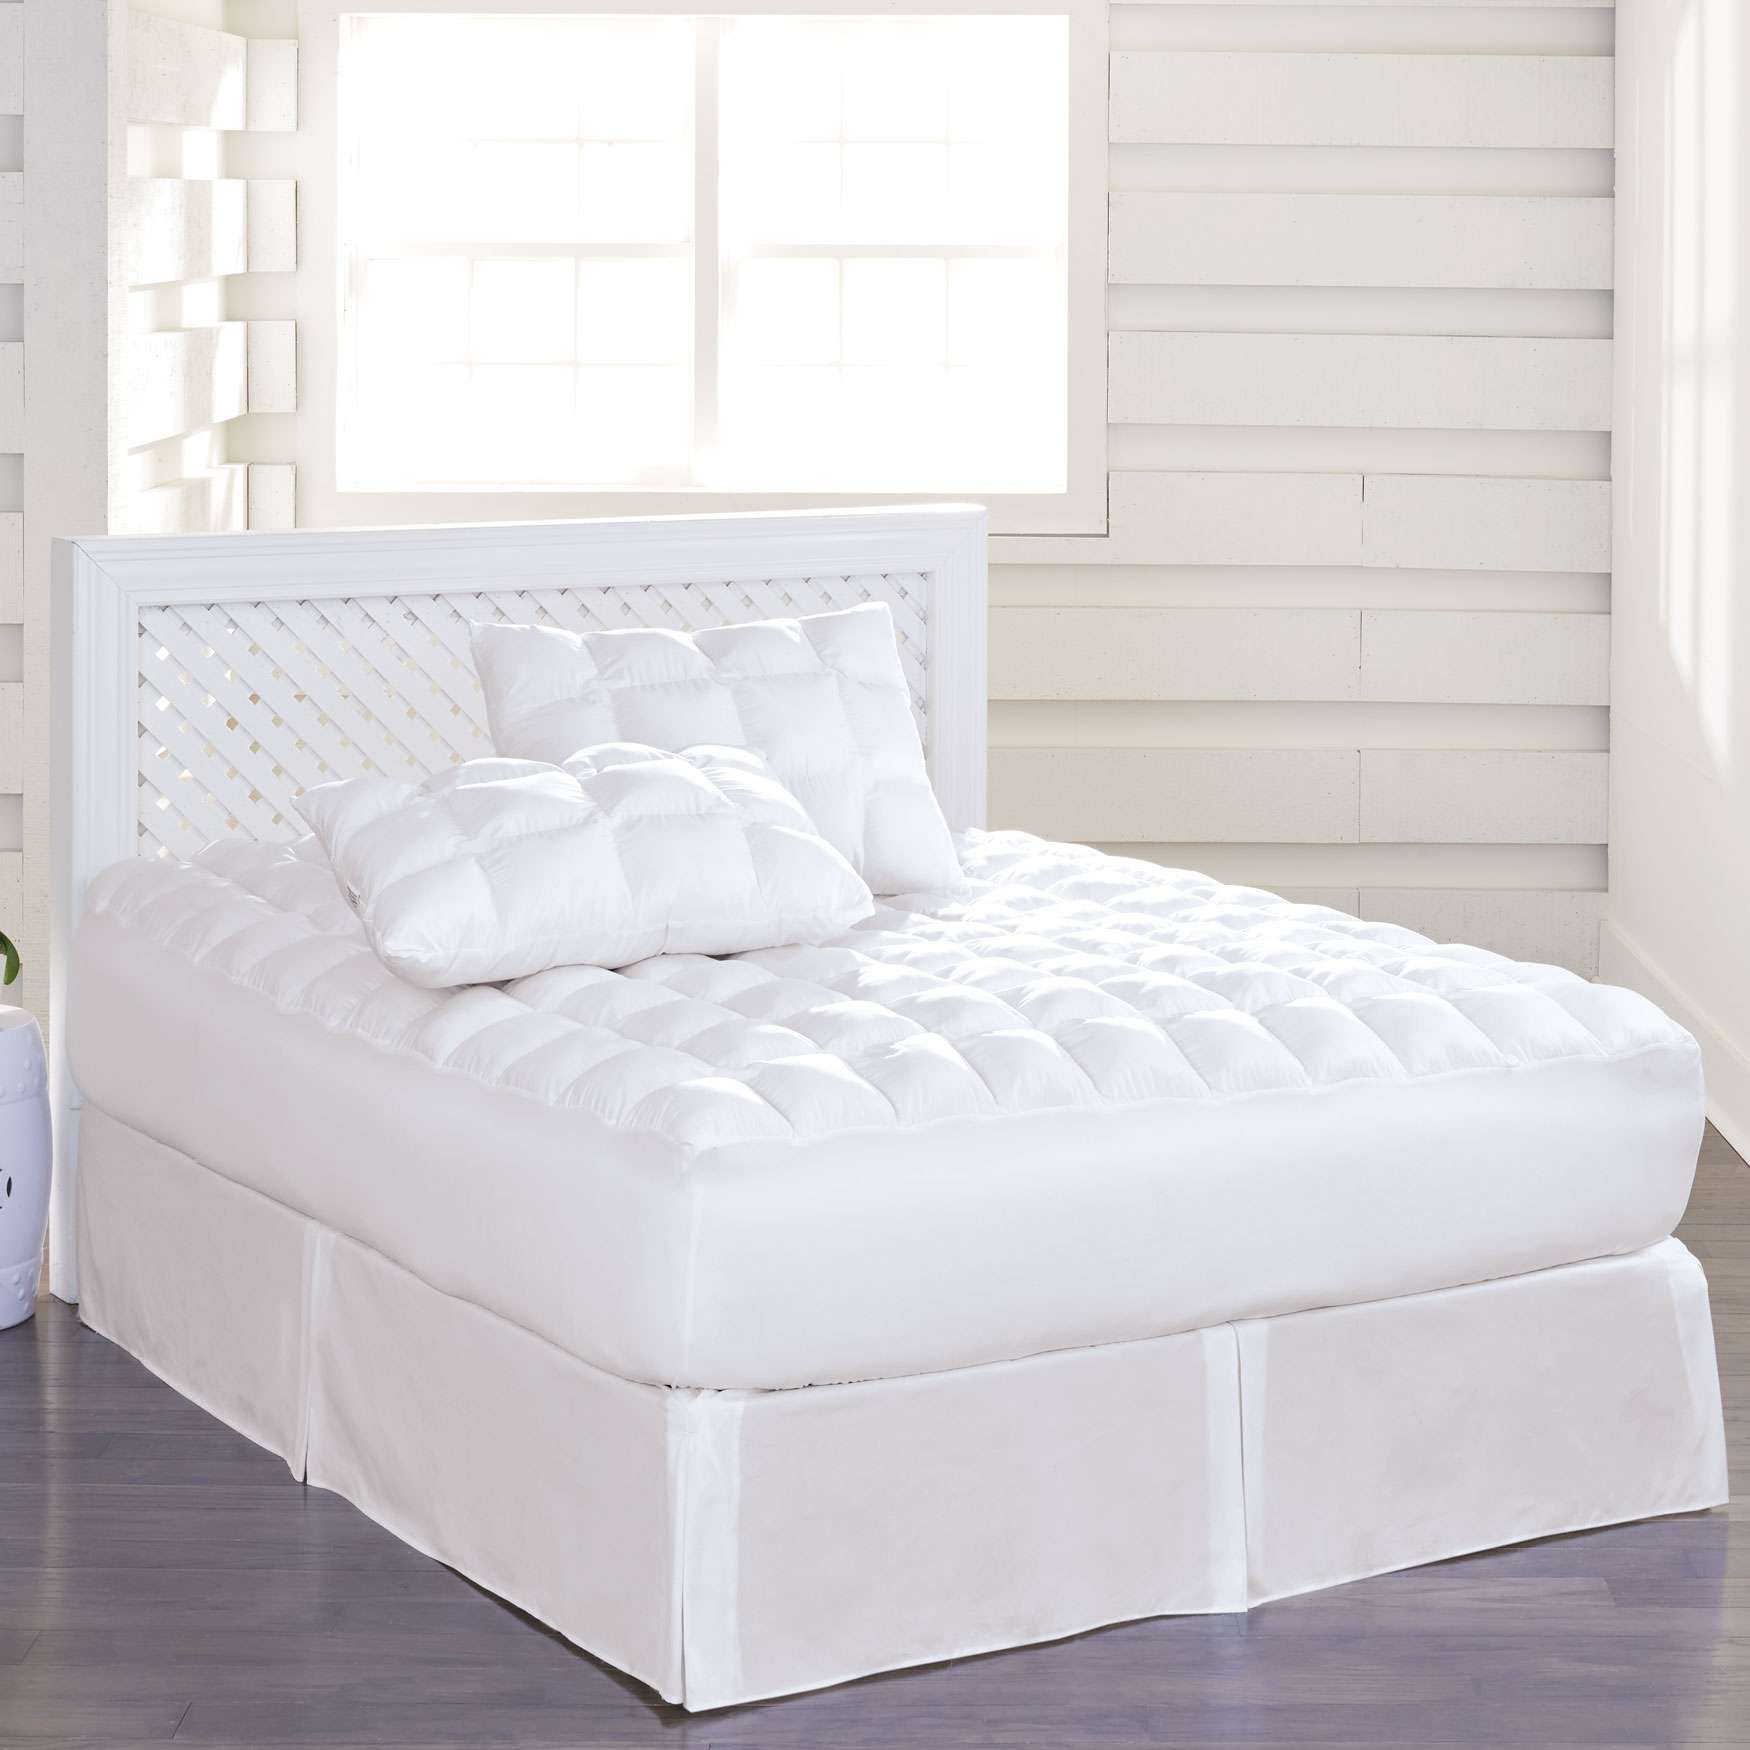 200-TC Cotton Puff Mattress Pad,